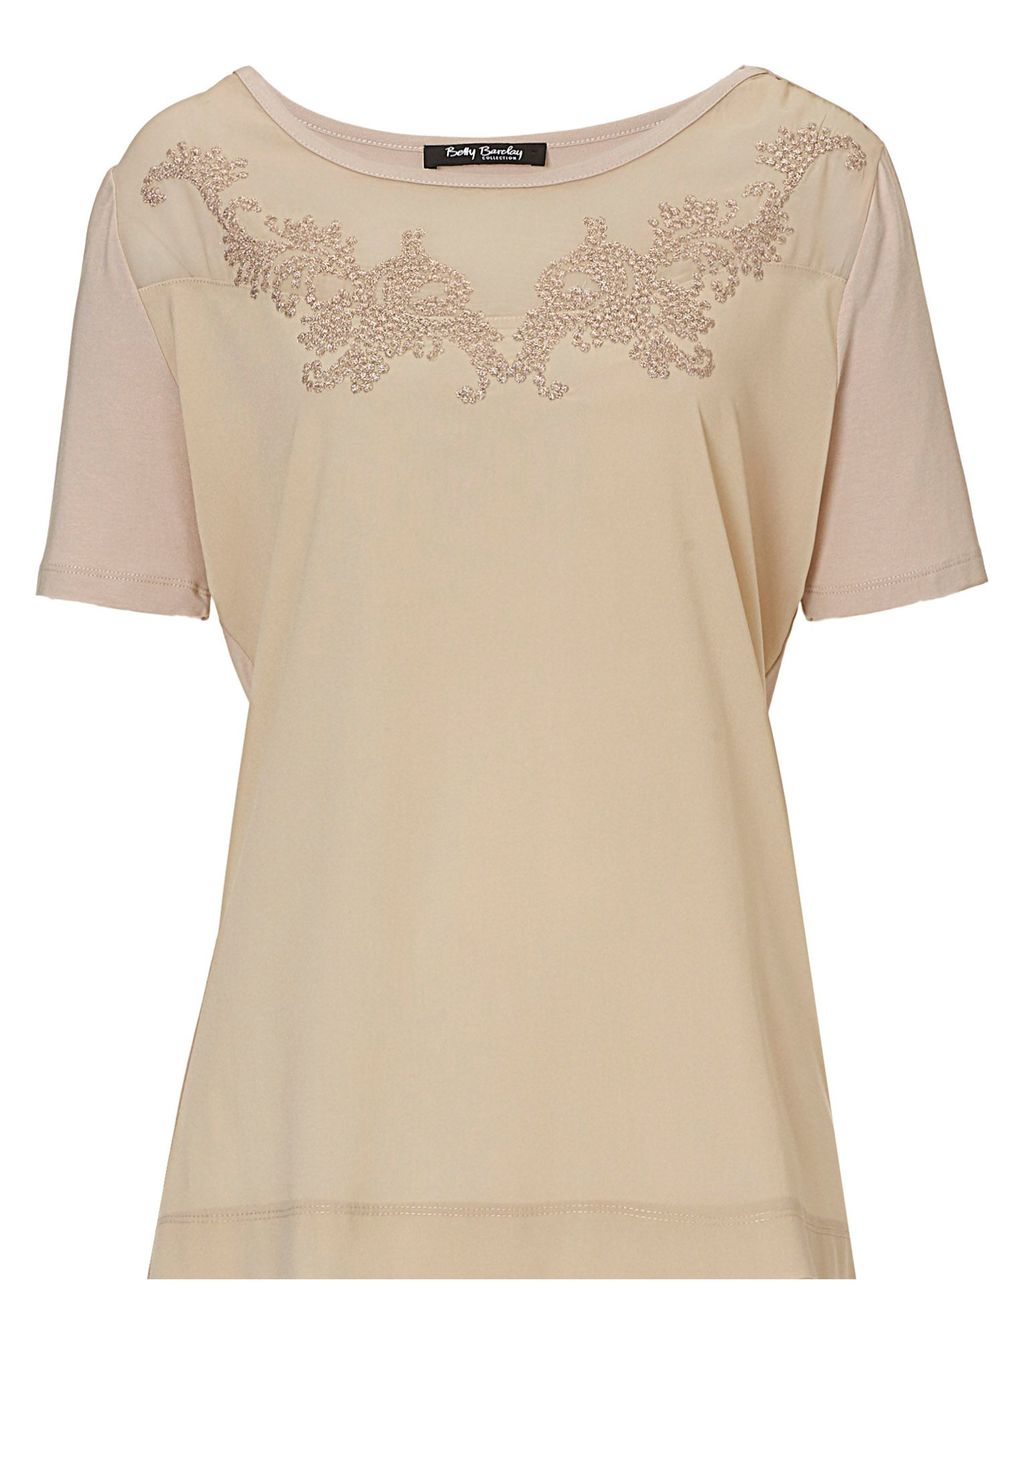 Short Sleeved Embellished Top, Beige - neckline: round neck; pattern: plain; bust detail: added detail/embellishment at bust; predominant colour: nude; occasions: casual; length: standard; style: top; fibres: viscose/rayon - stretch; fit: body skimming; sleeve length: short sleeve; sleeve style: standard; pattern type: fabric; texture group: jersey - stretchy/drapey; embellishment: embroidered; season: s/s 2016